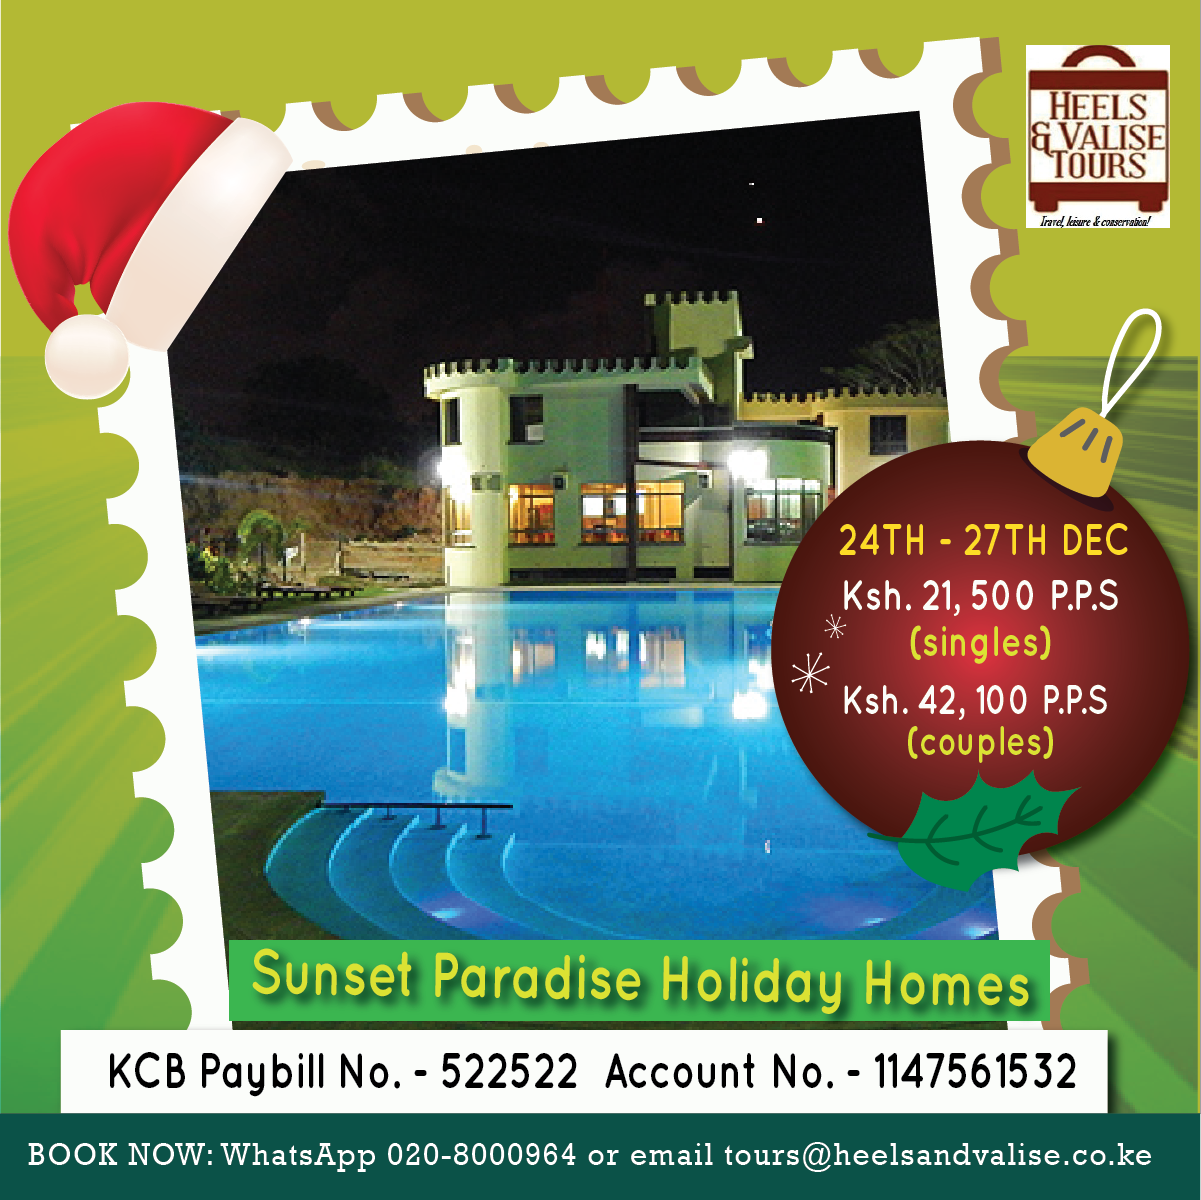 24th - 27th DEC Christmas Holiday at the Coast